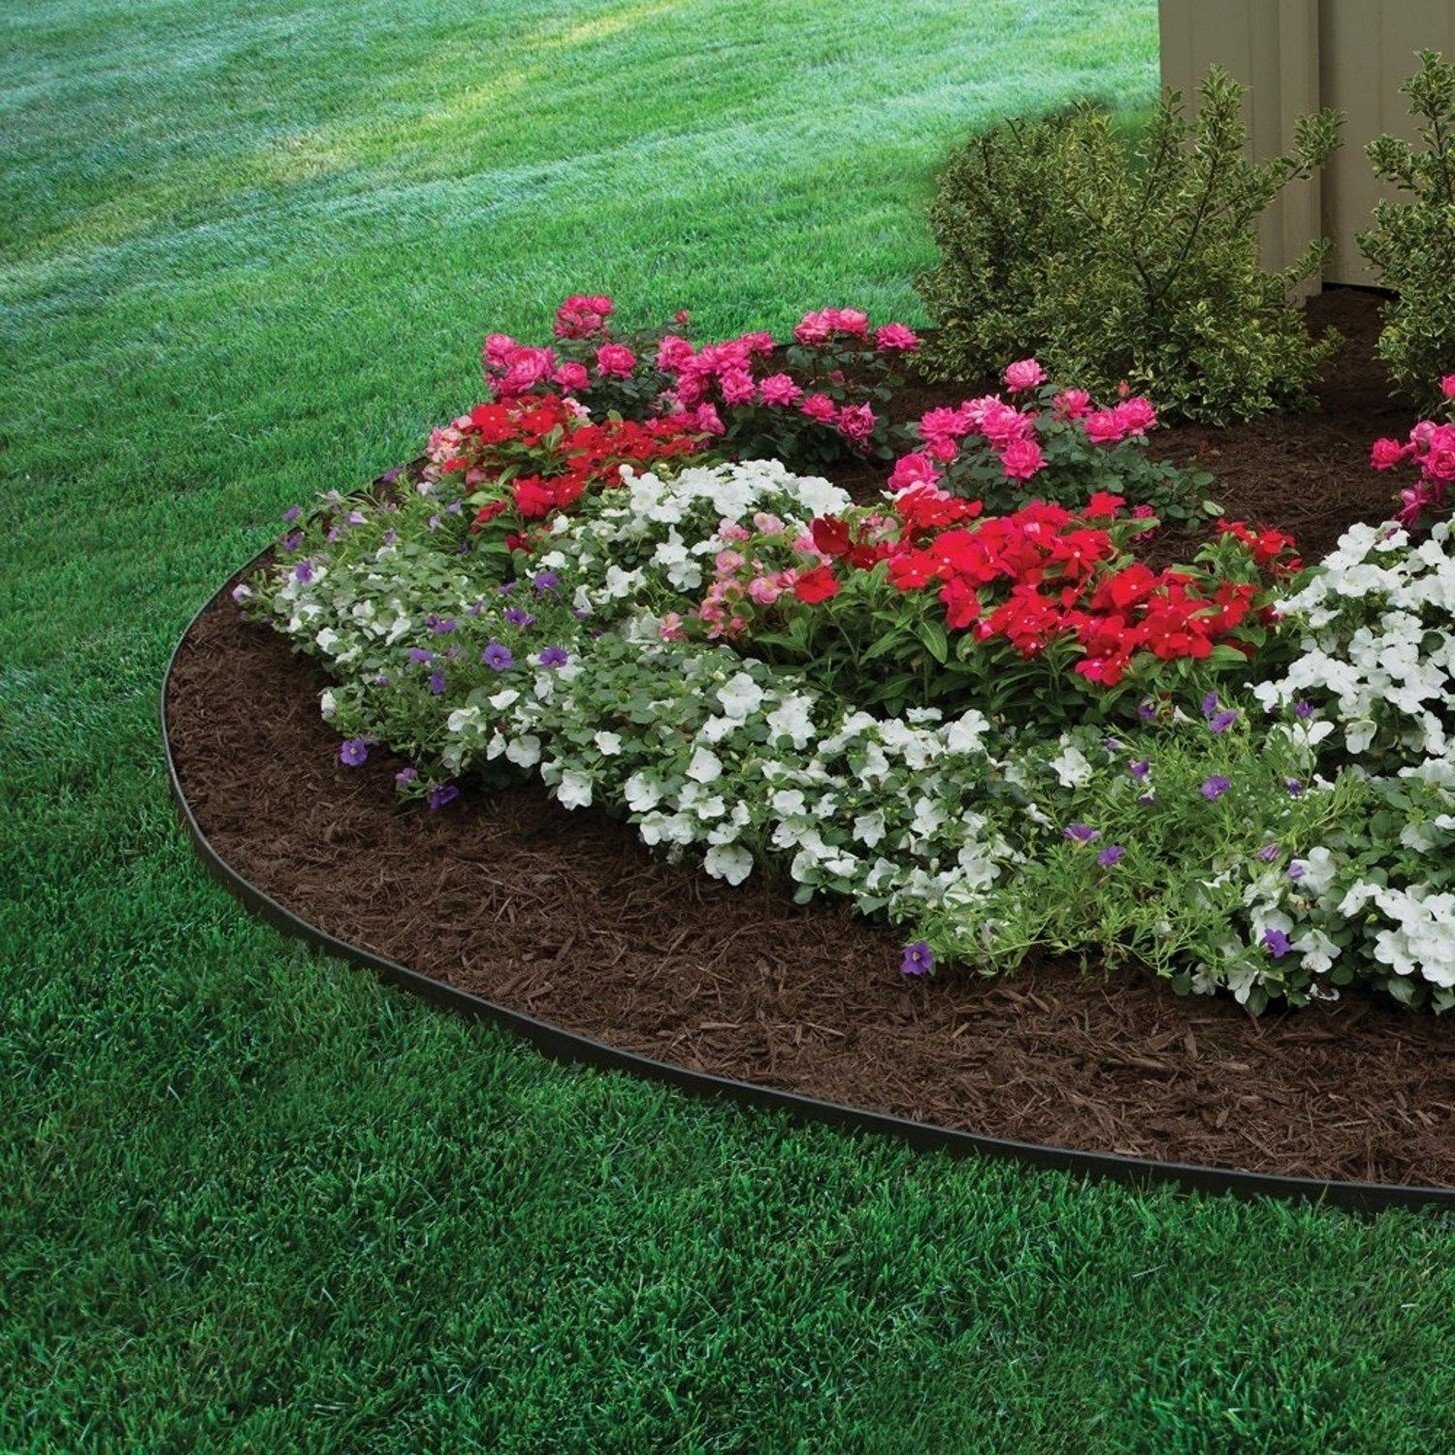 10 Stylish Edging Ideas For Flower Beds best flower bed edging ideas for your home cheap landscape loversiq